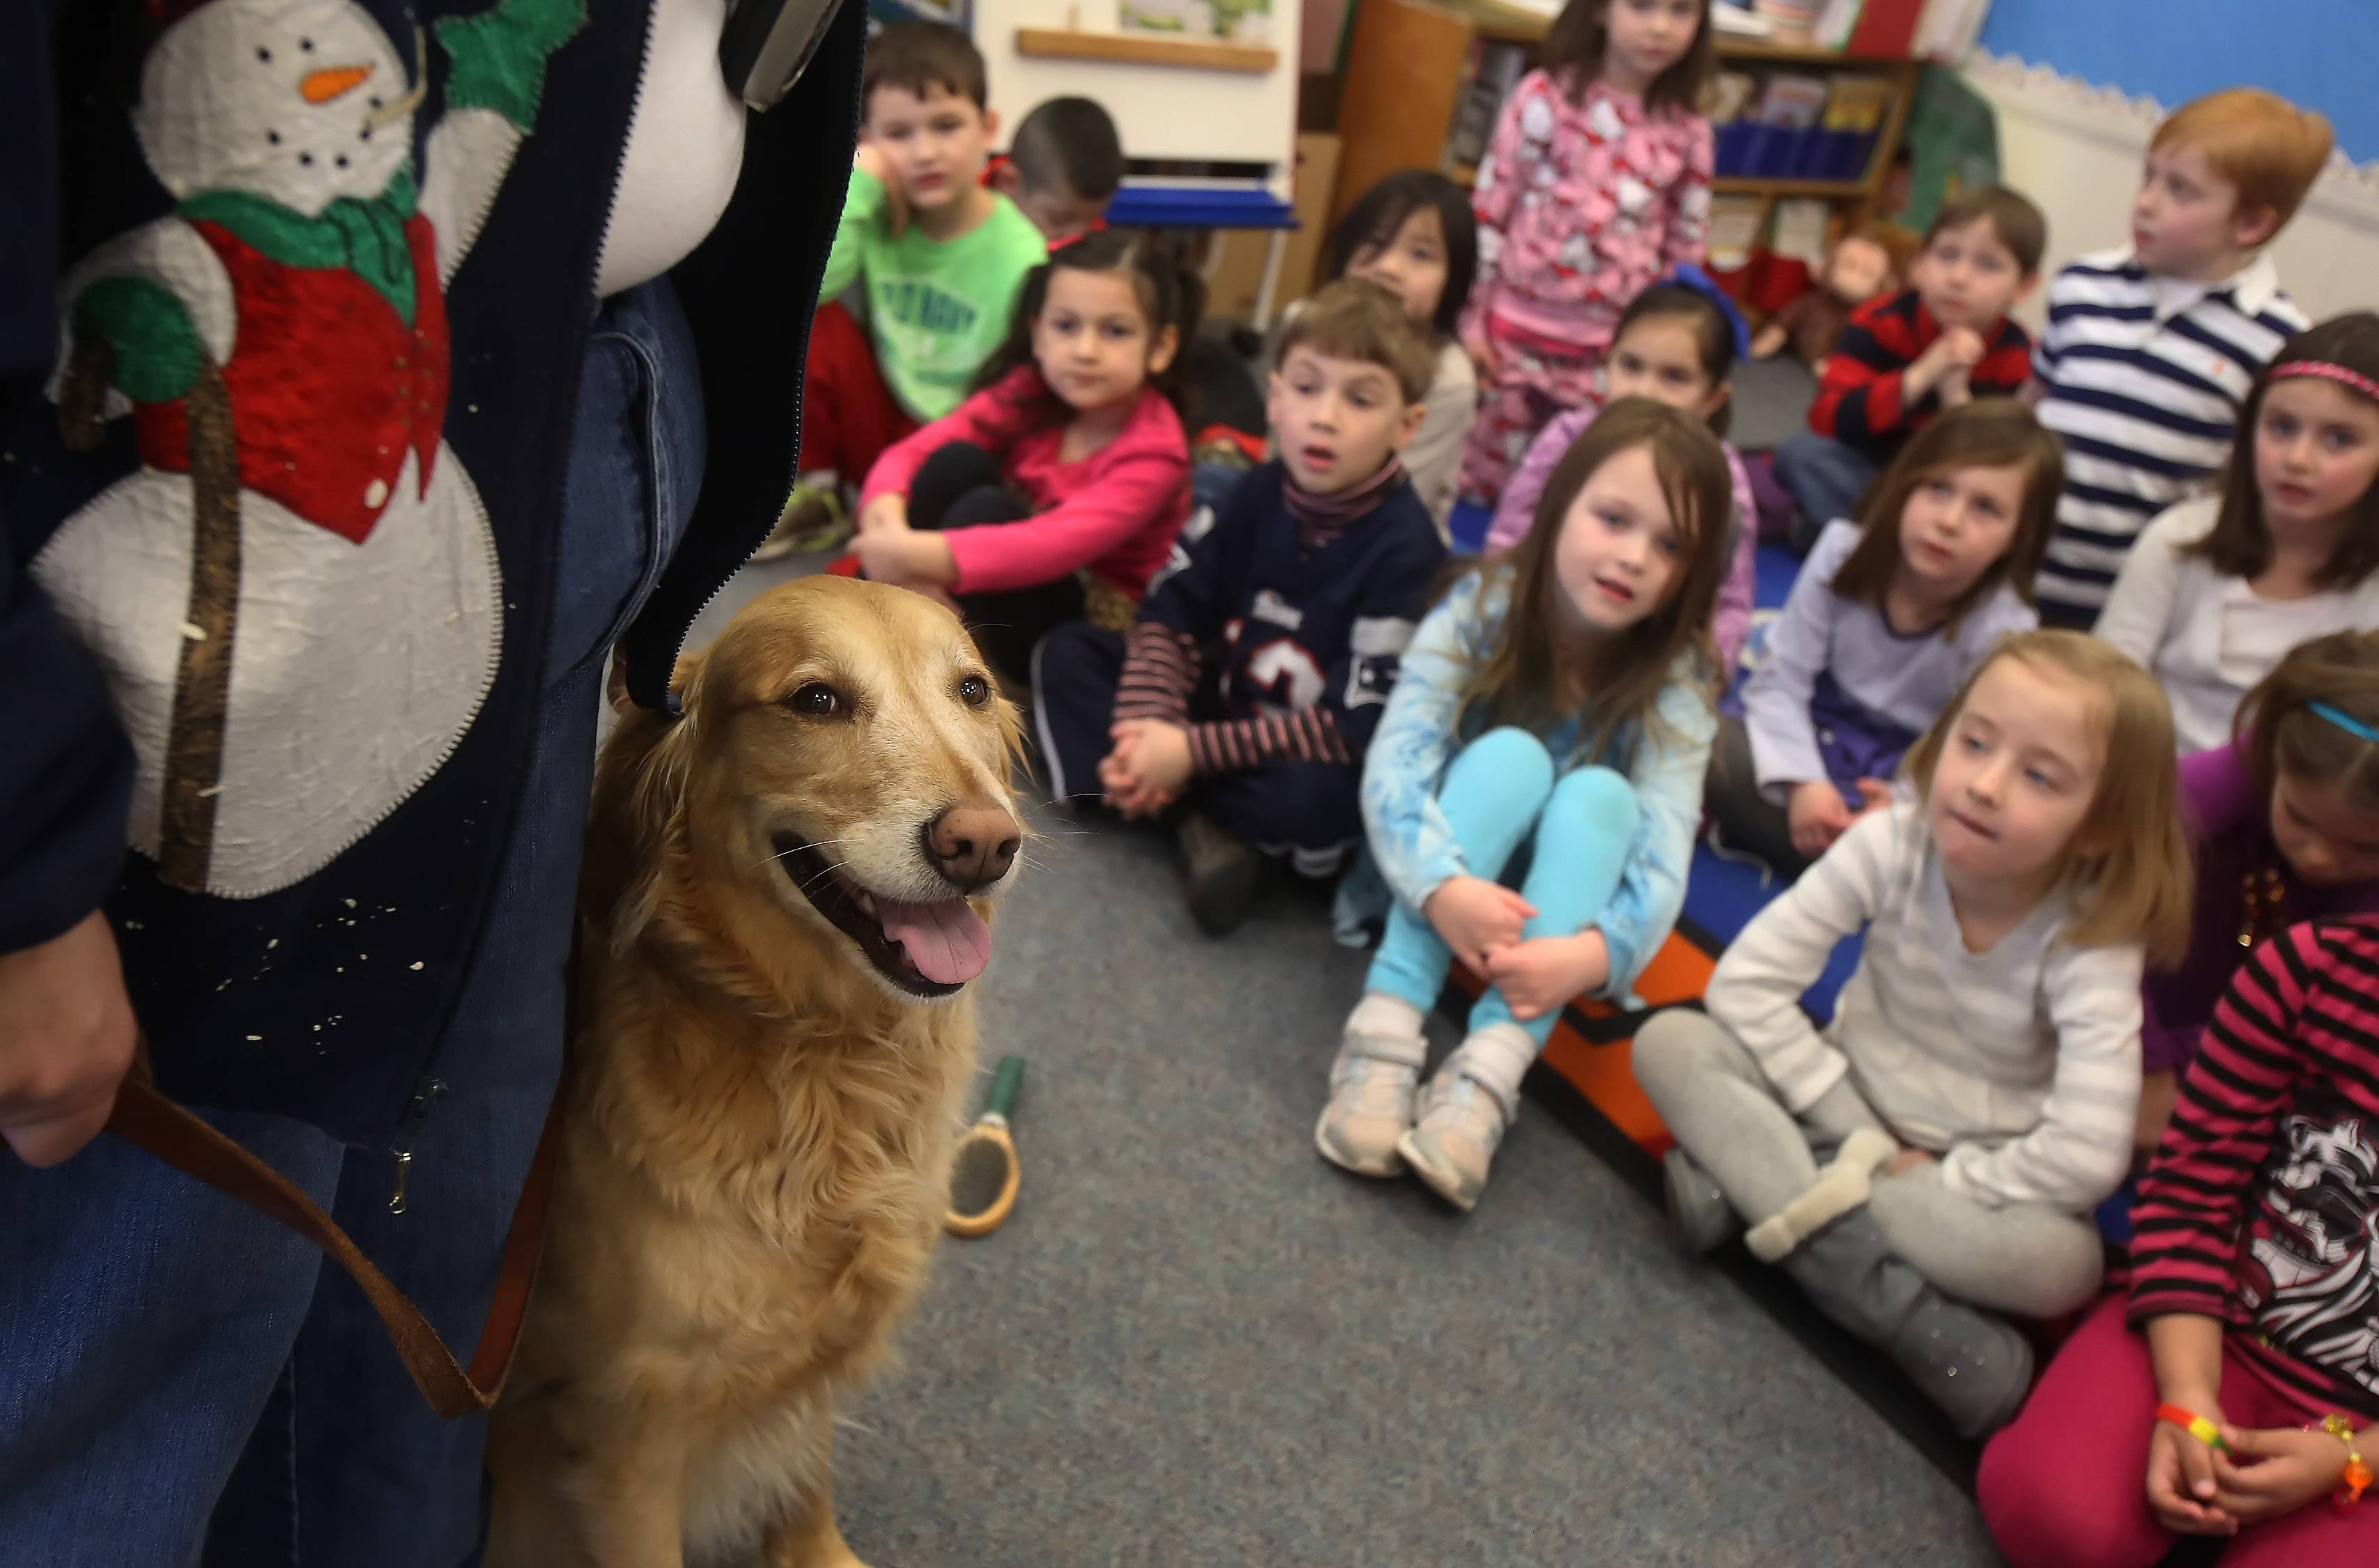 Students learn about the work done by therapy dog, Payton, a golden retriever, by Cathy Jackson during Kindergarten Career Fair Day at Rockland School in Libertyville. Students learned about jobs from a librarian, a firefighter, a human resources director and a therapy dog handler.